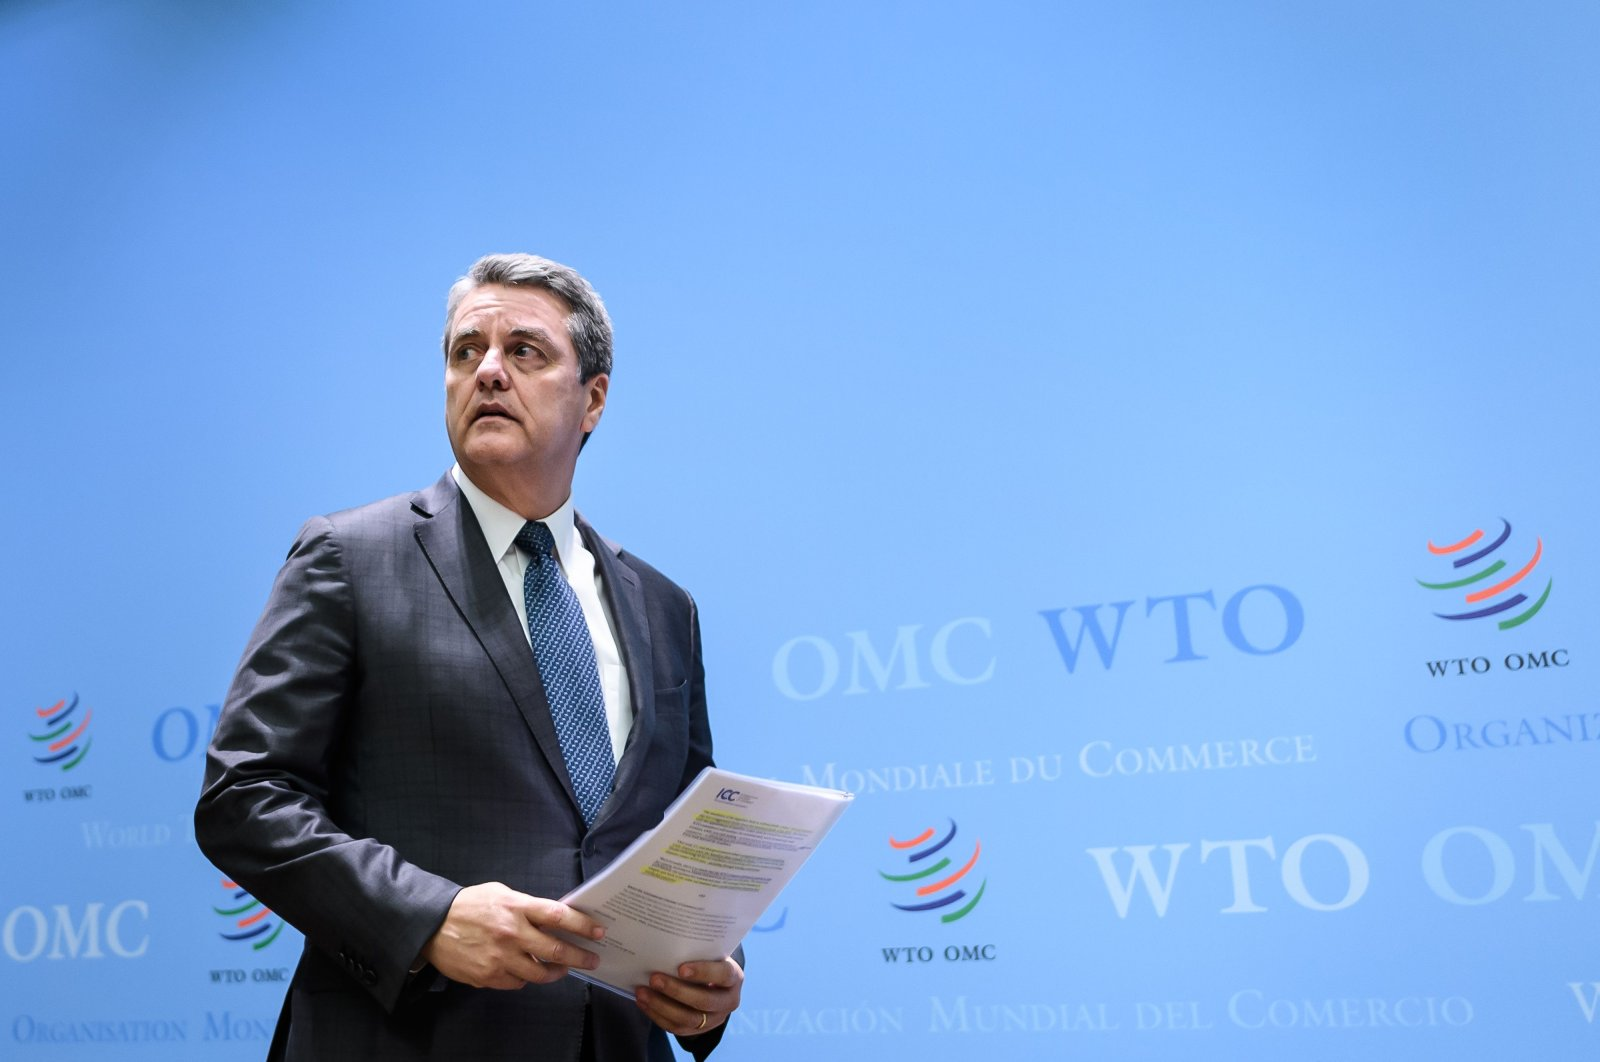 World Trade Organization (WTO) Director General Roberto Azevedo arrives to address a press conference following a WTO general council meeting, Geneva, Dec. 10, 2019. (AFP Photo)